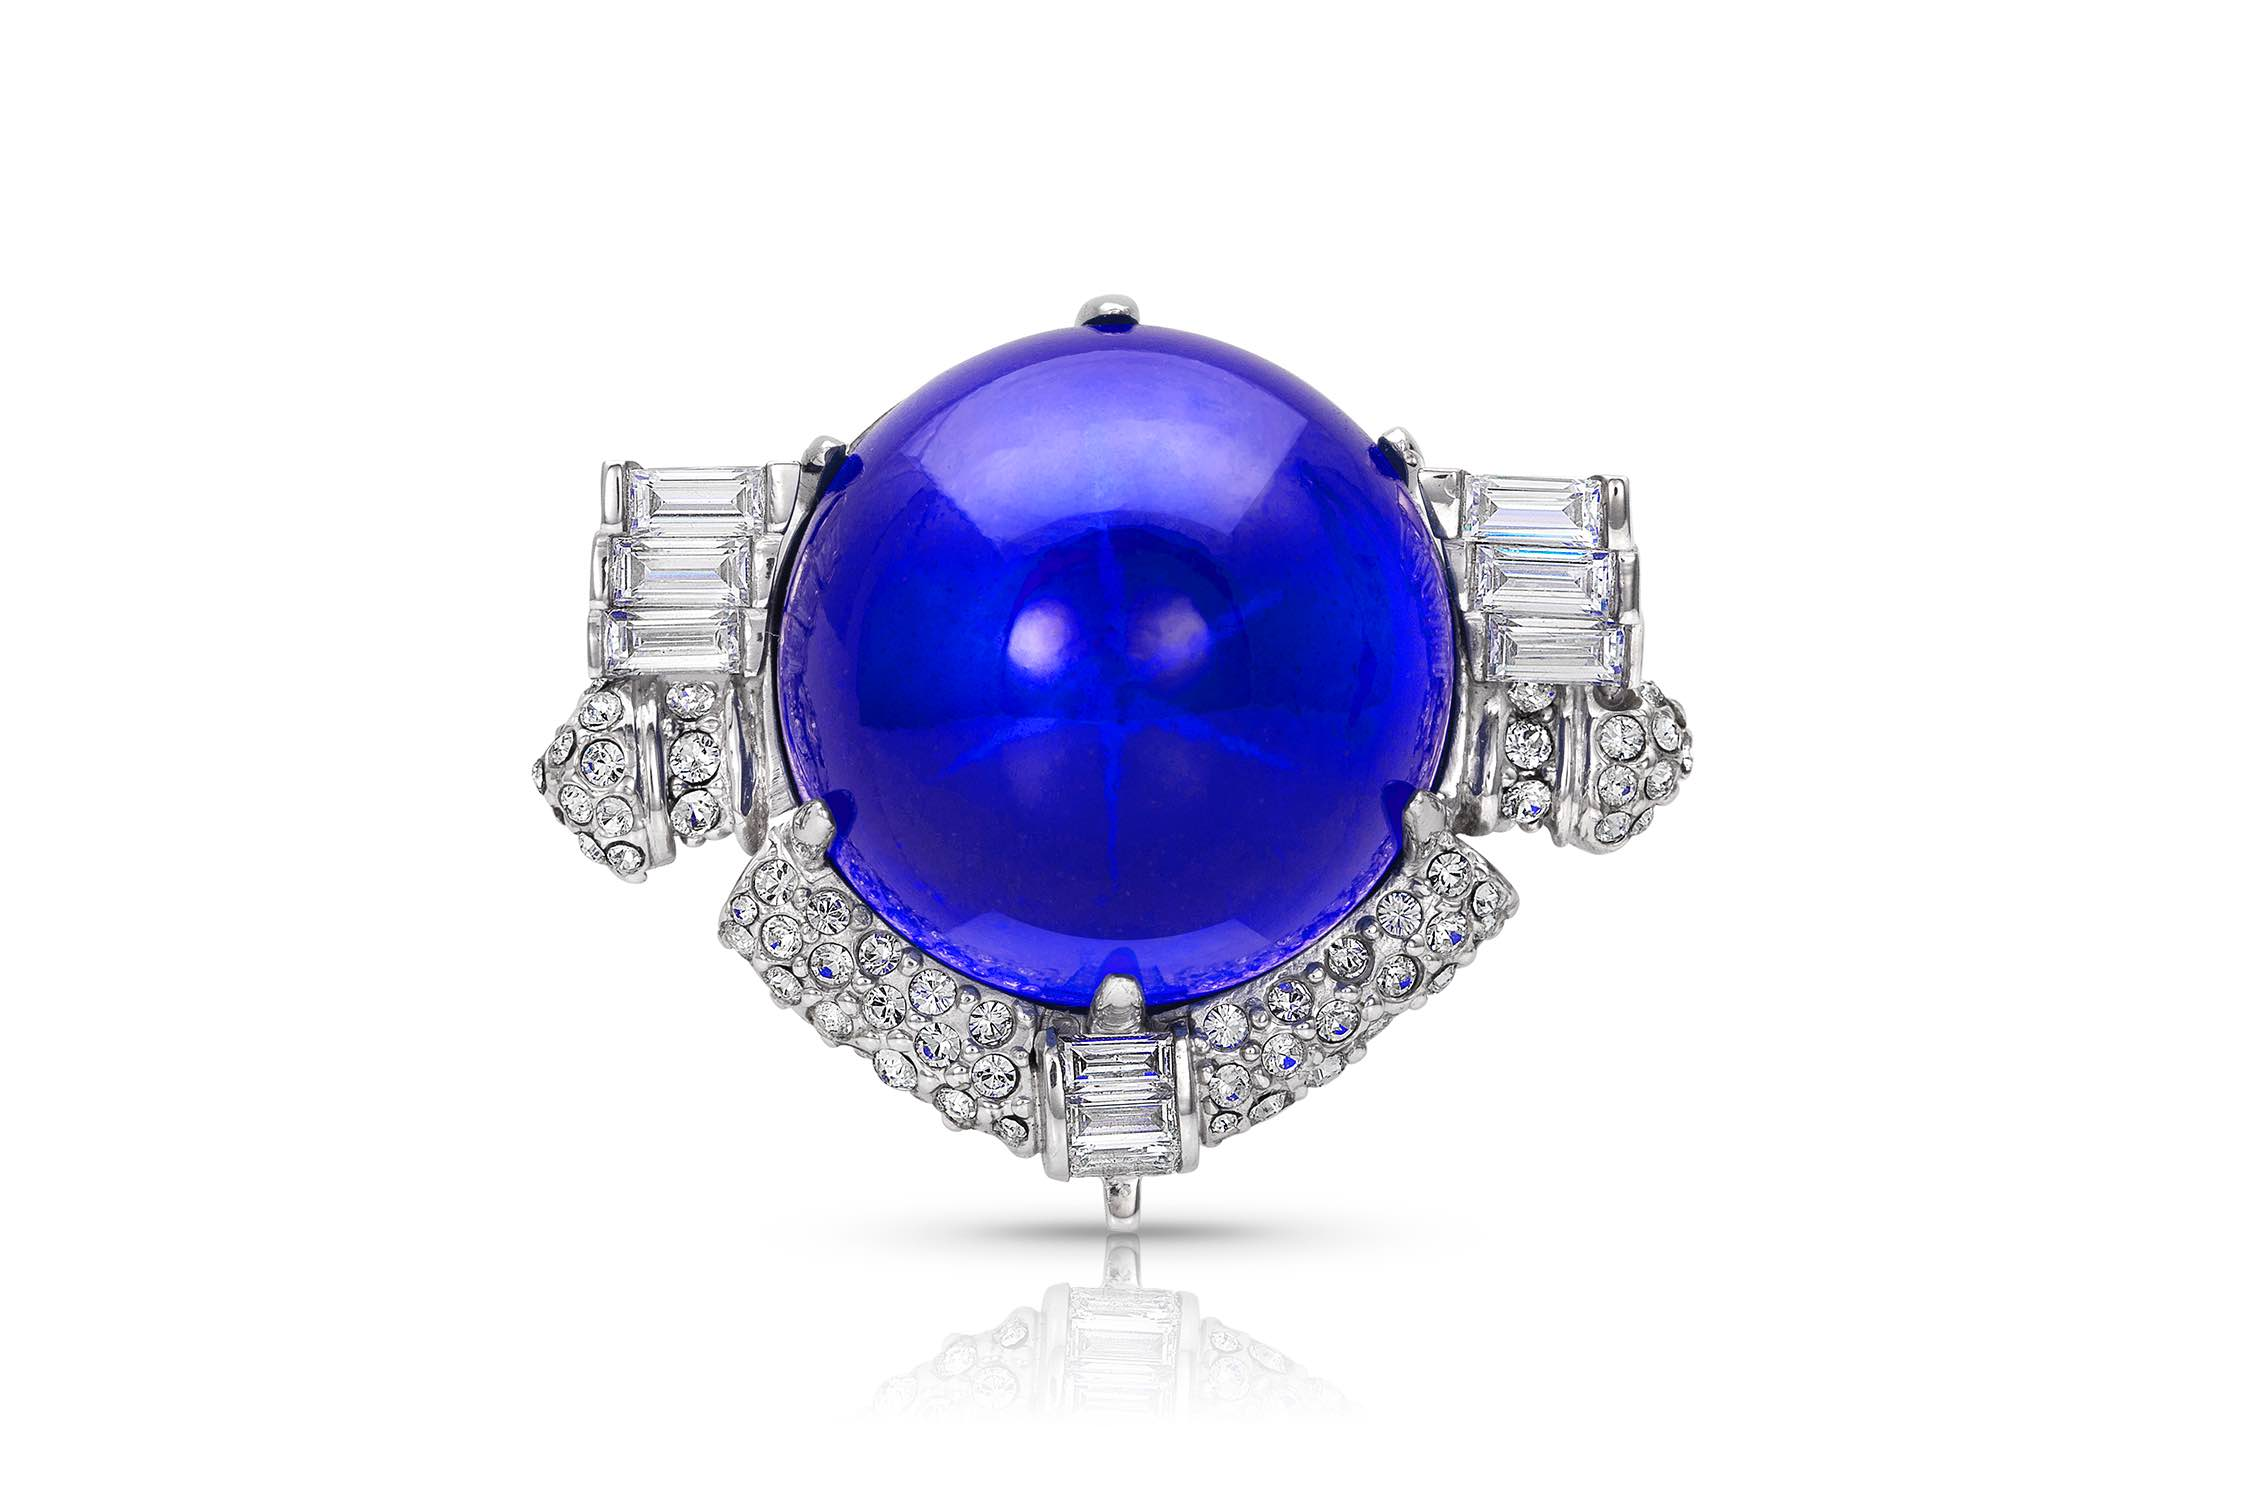 Kathleen Lynagh created this replica Carole Lombard Star Sapphire brooch